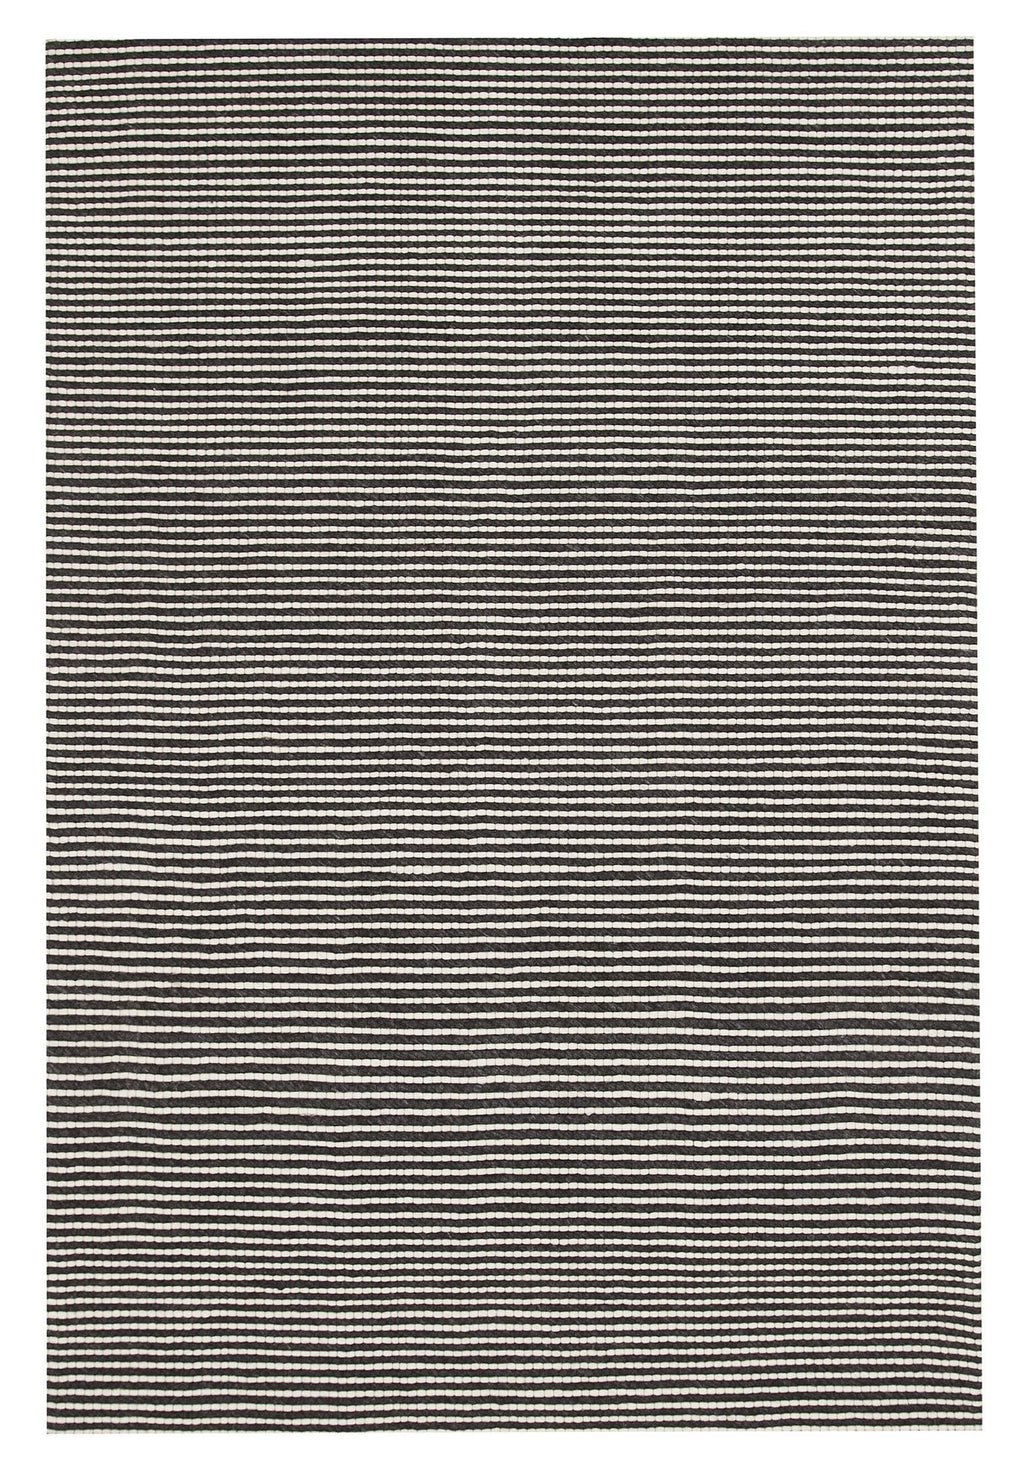 Amiens Black & White Wool & Viscose Rug